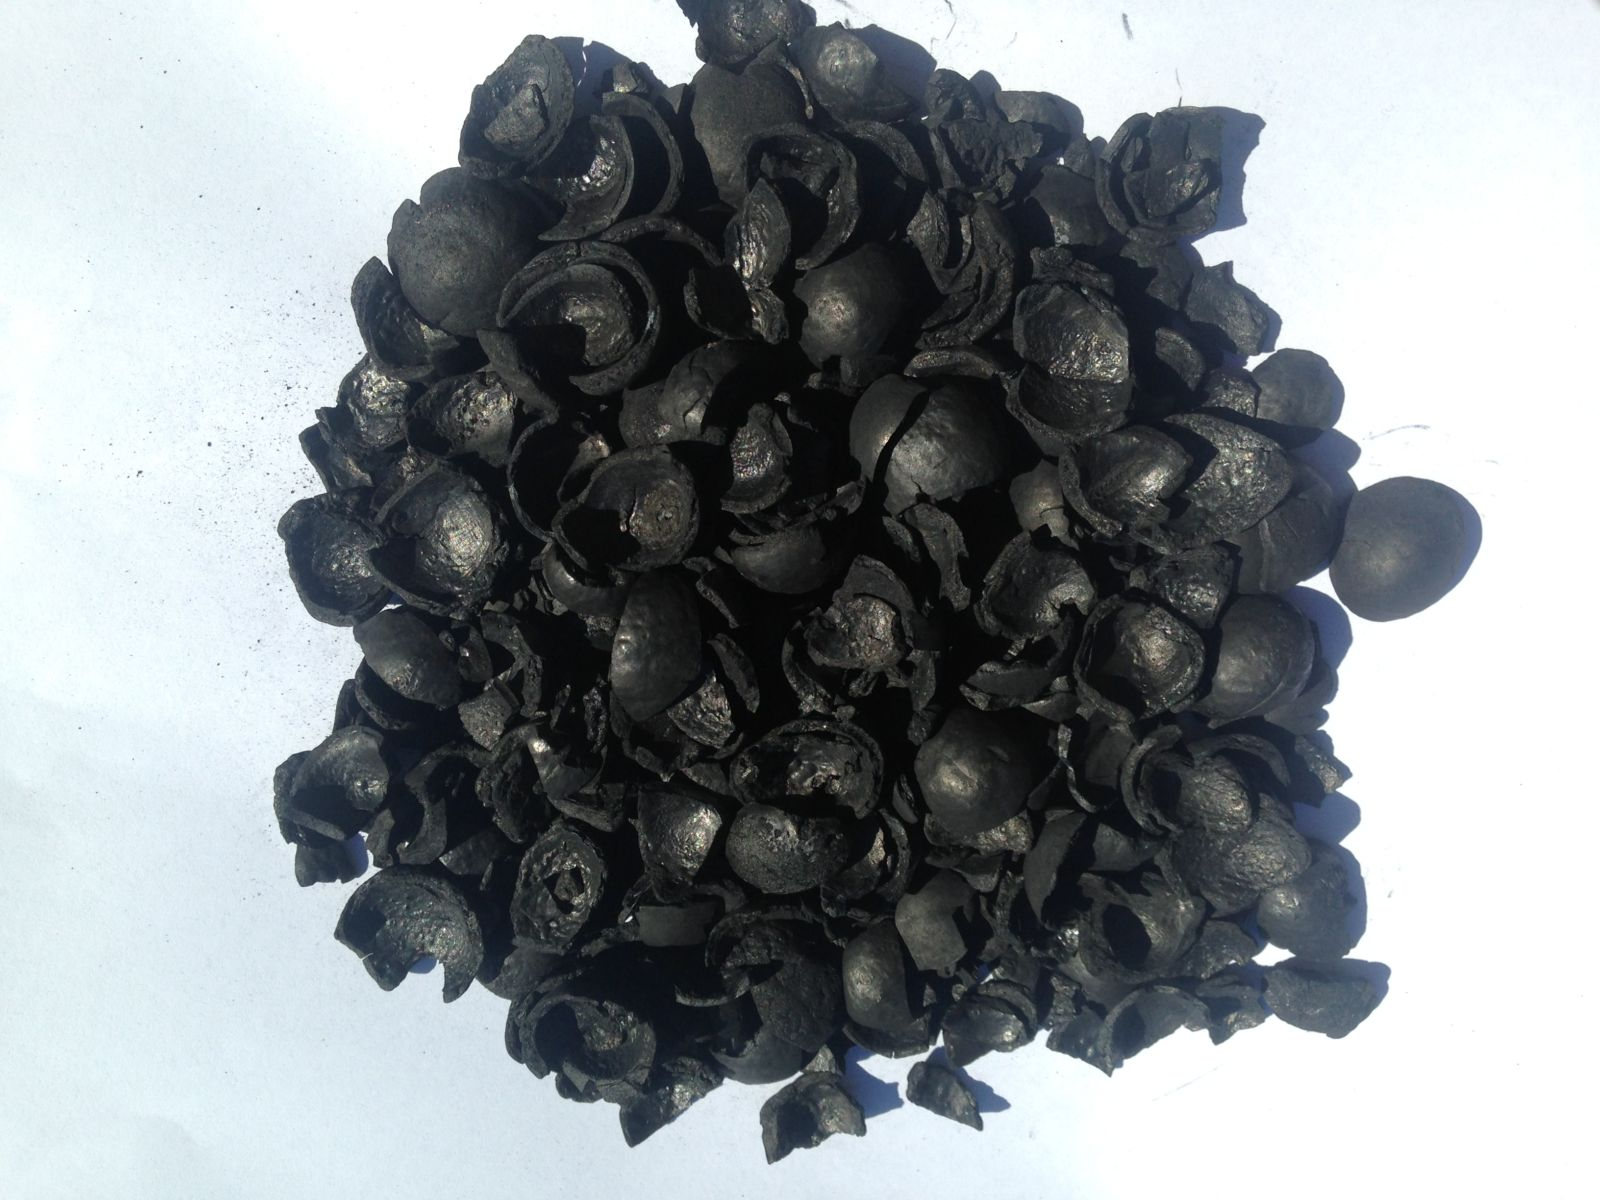 Macadamia shell biochar on white background.